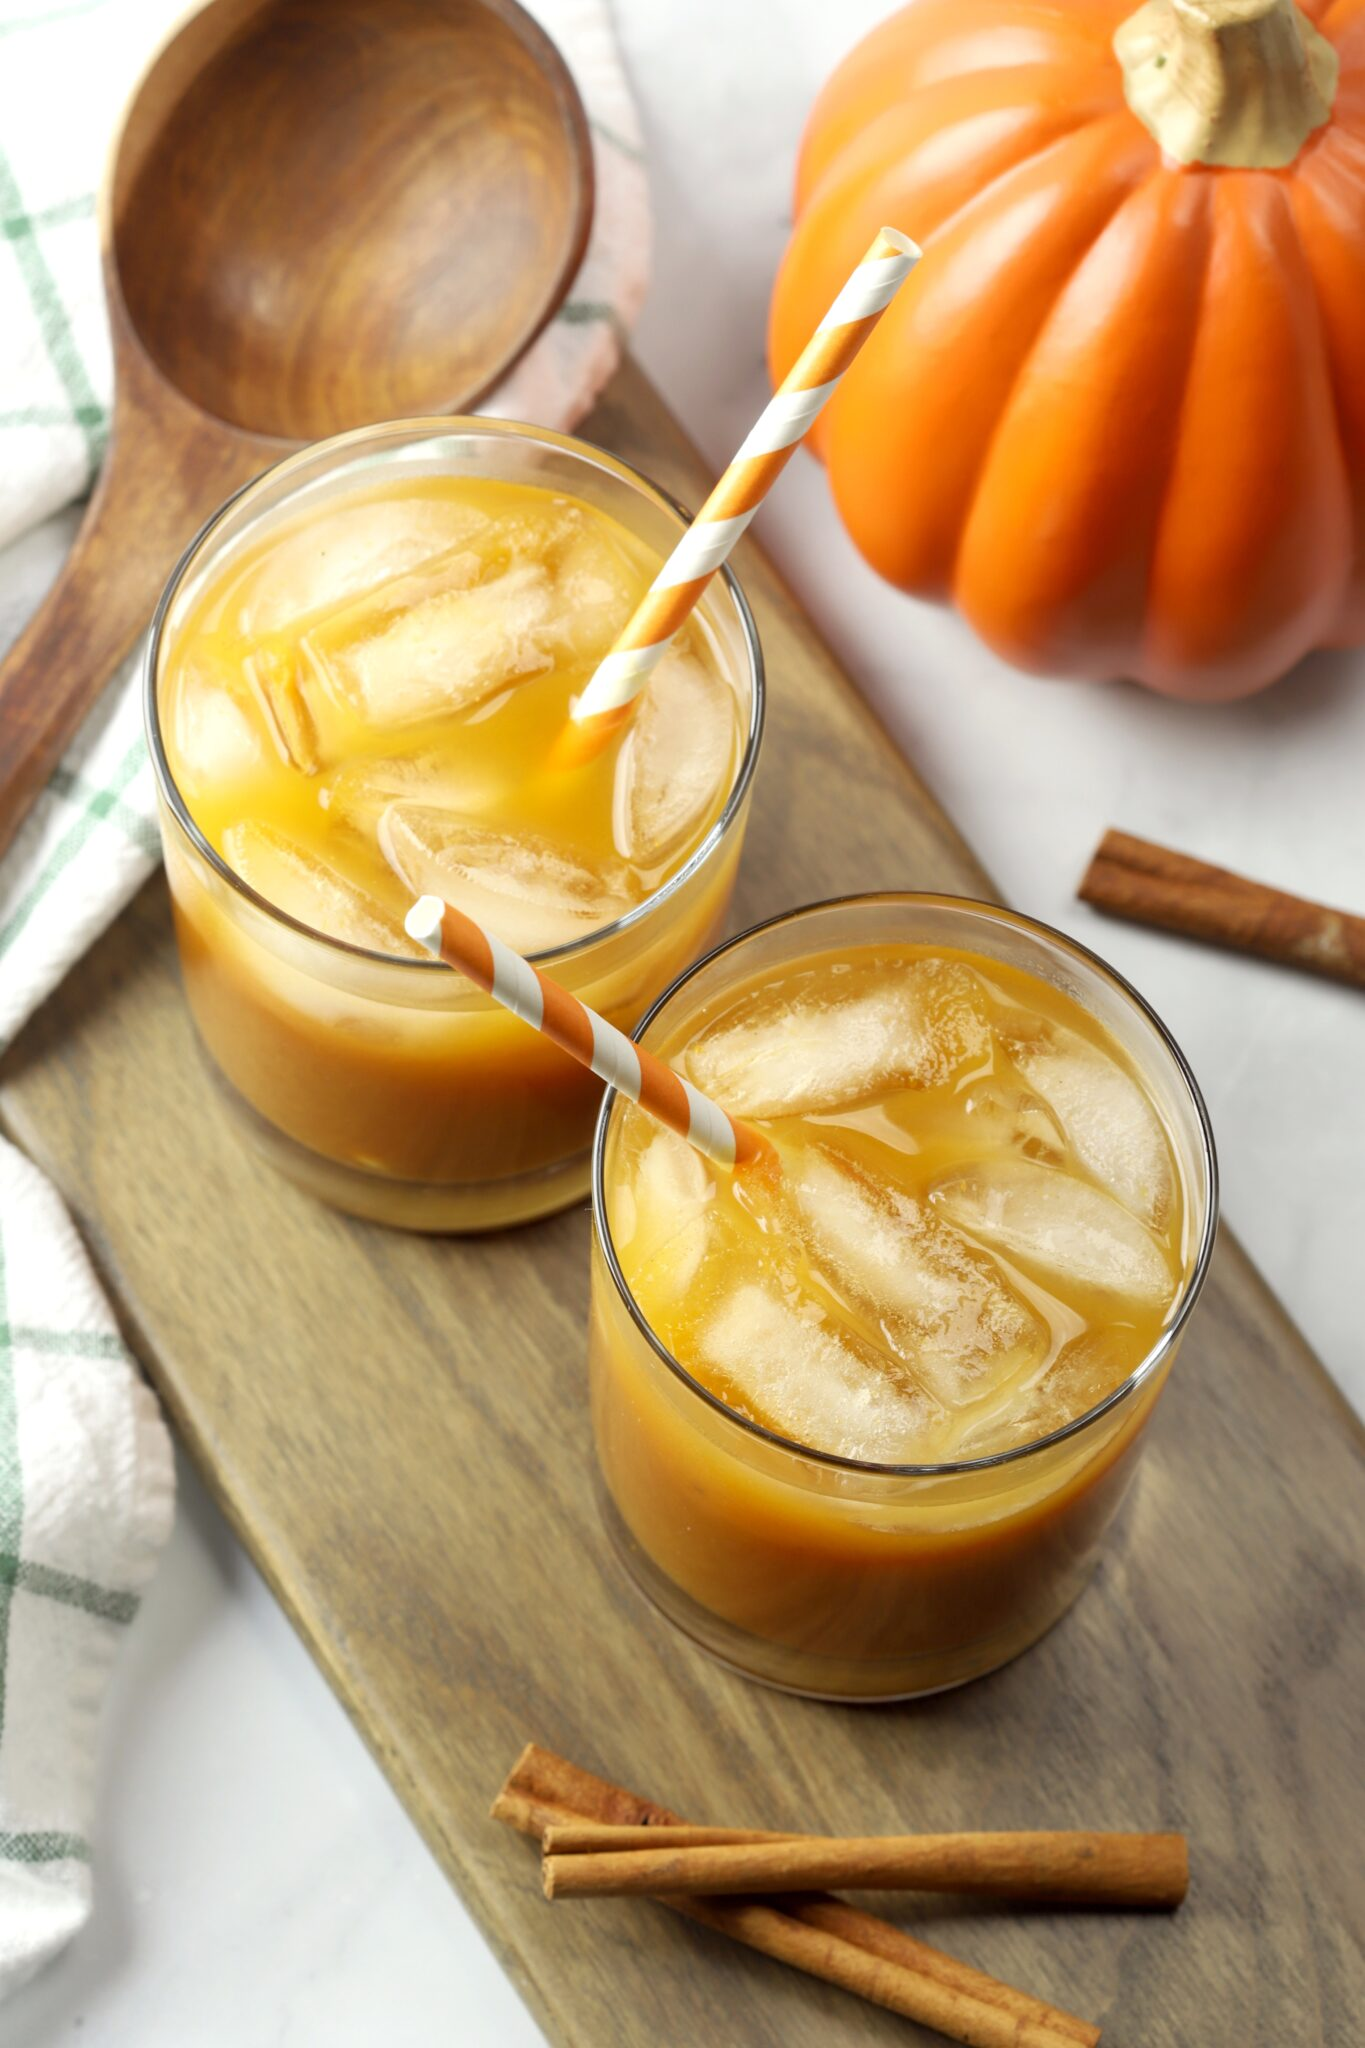 Two glasses of pumpkin juice on a wooden cutting board with orange striped straws.